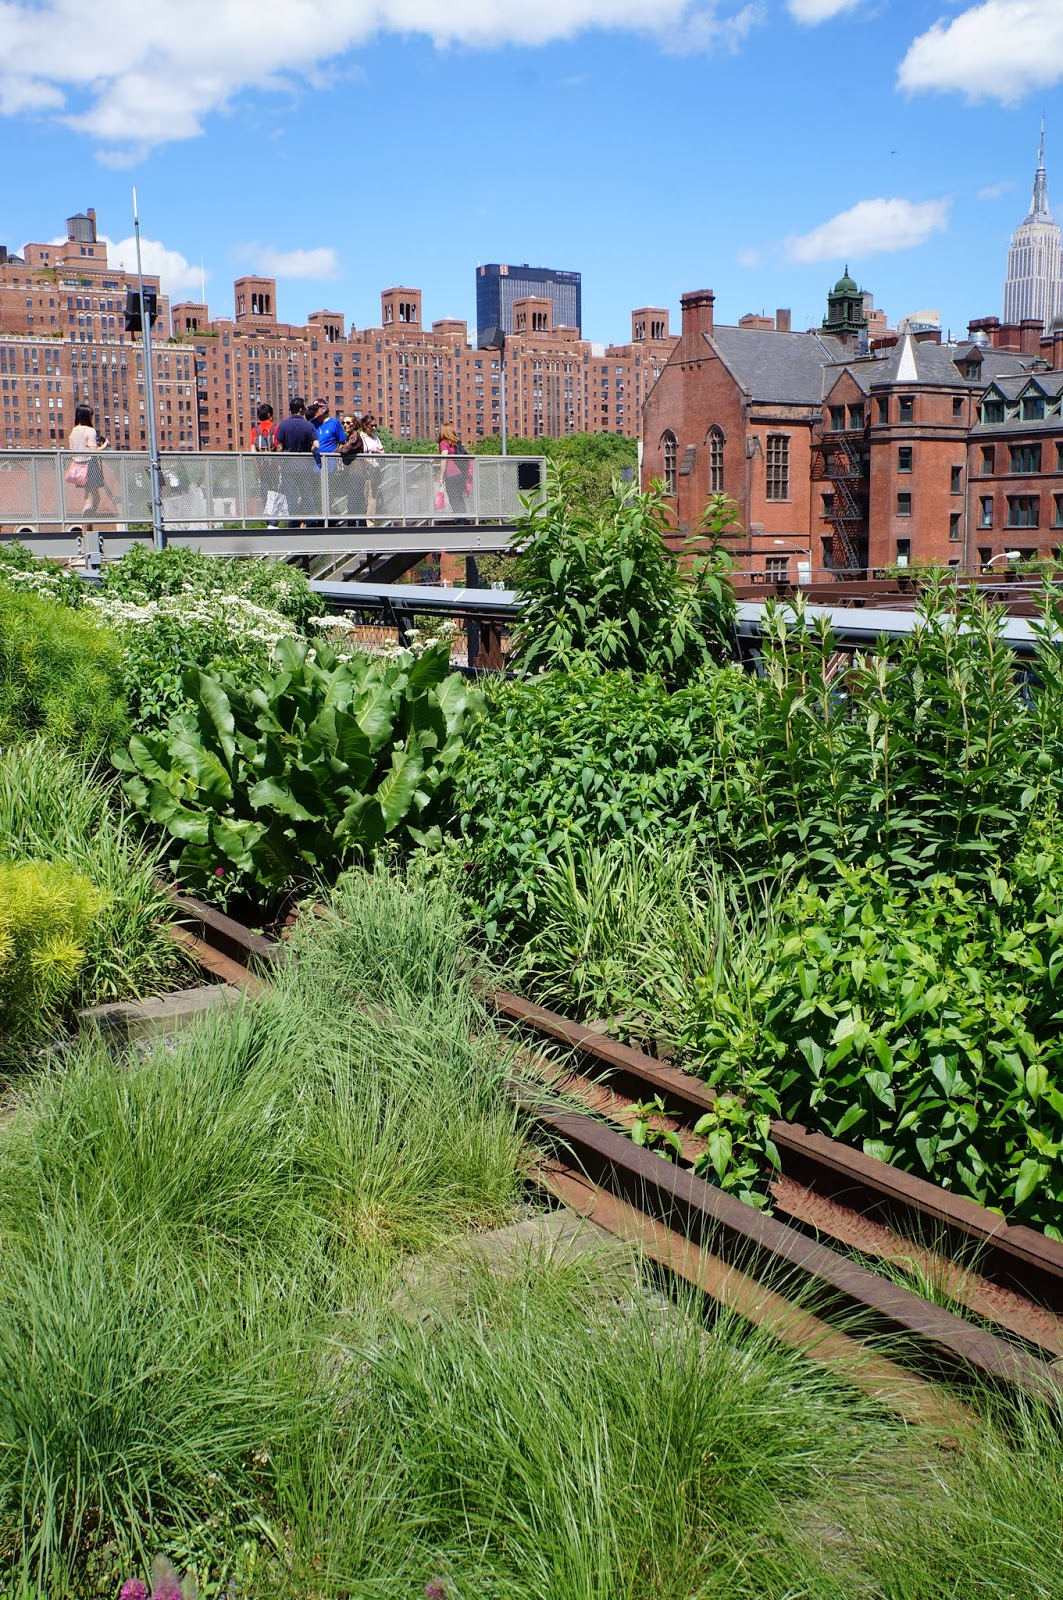 highline park, empire state building, train tracks, chelsea, fauna, natural plants, hipster, NYC, New York, 10 free things to do, free things to do in NYC, travel, New York, explore, adventures, photography, usa, tourism, tourists,